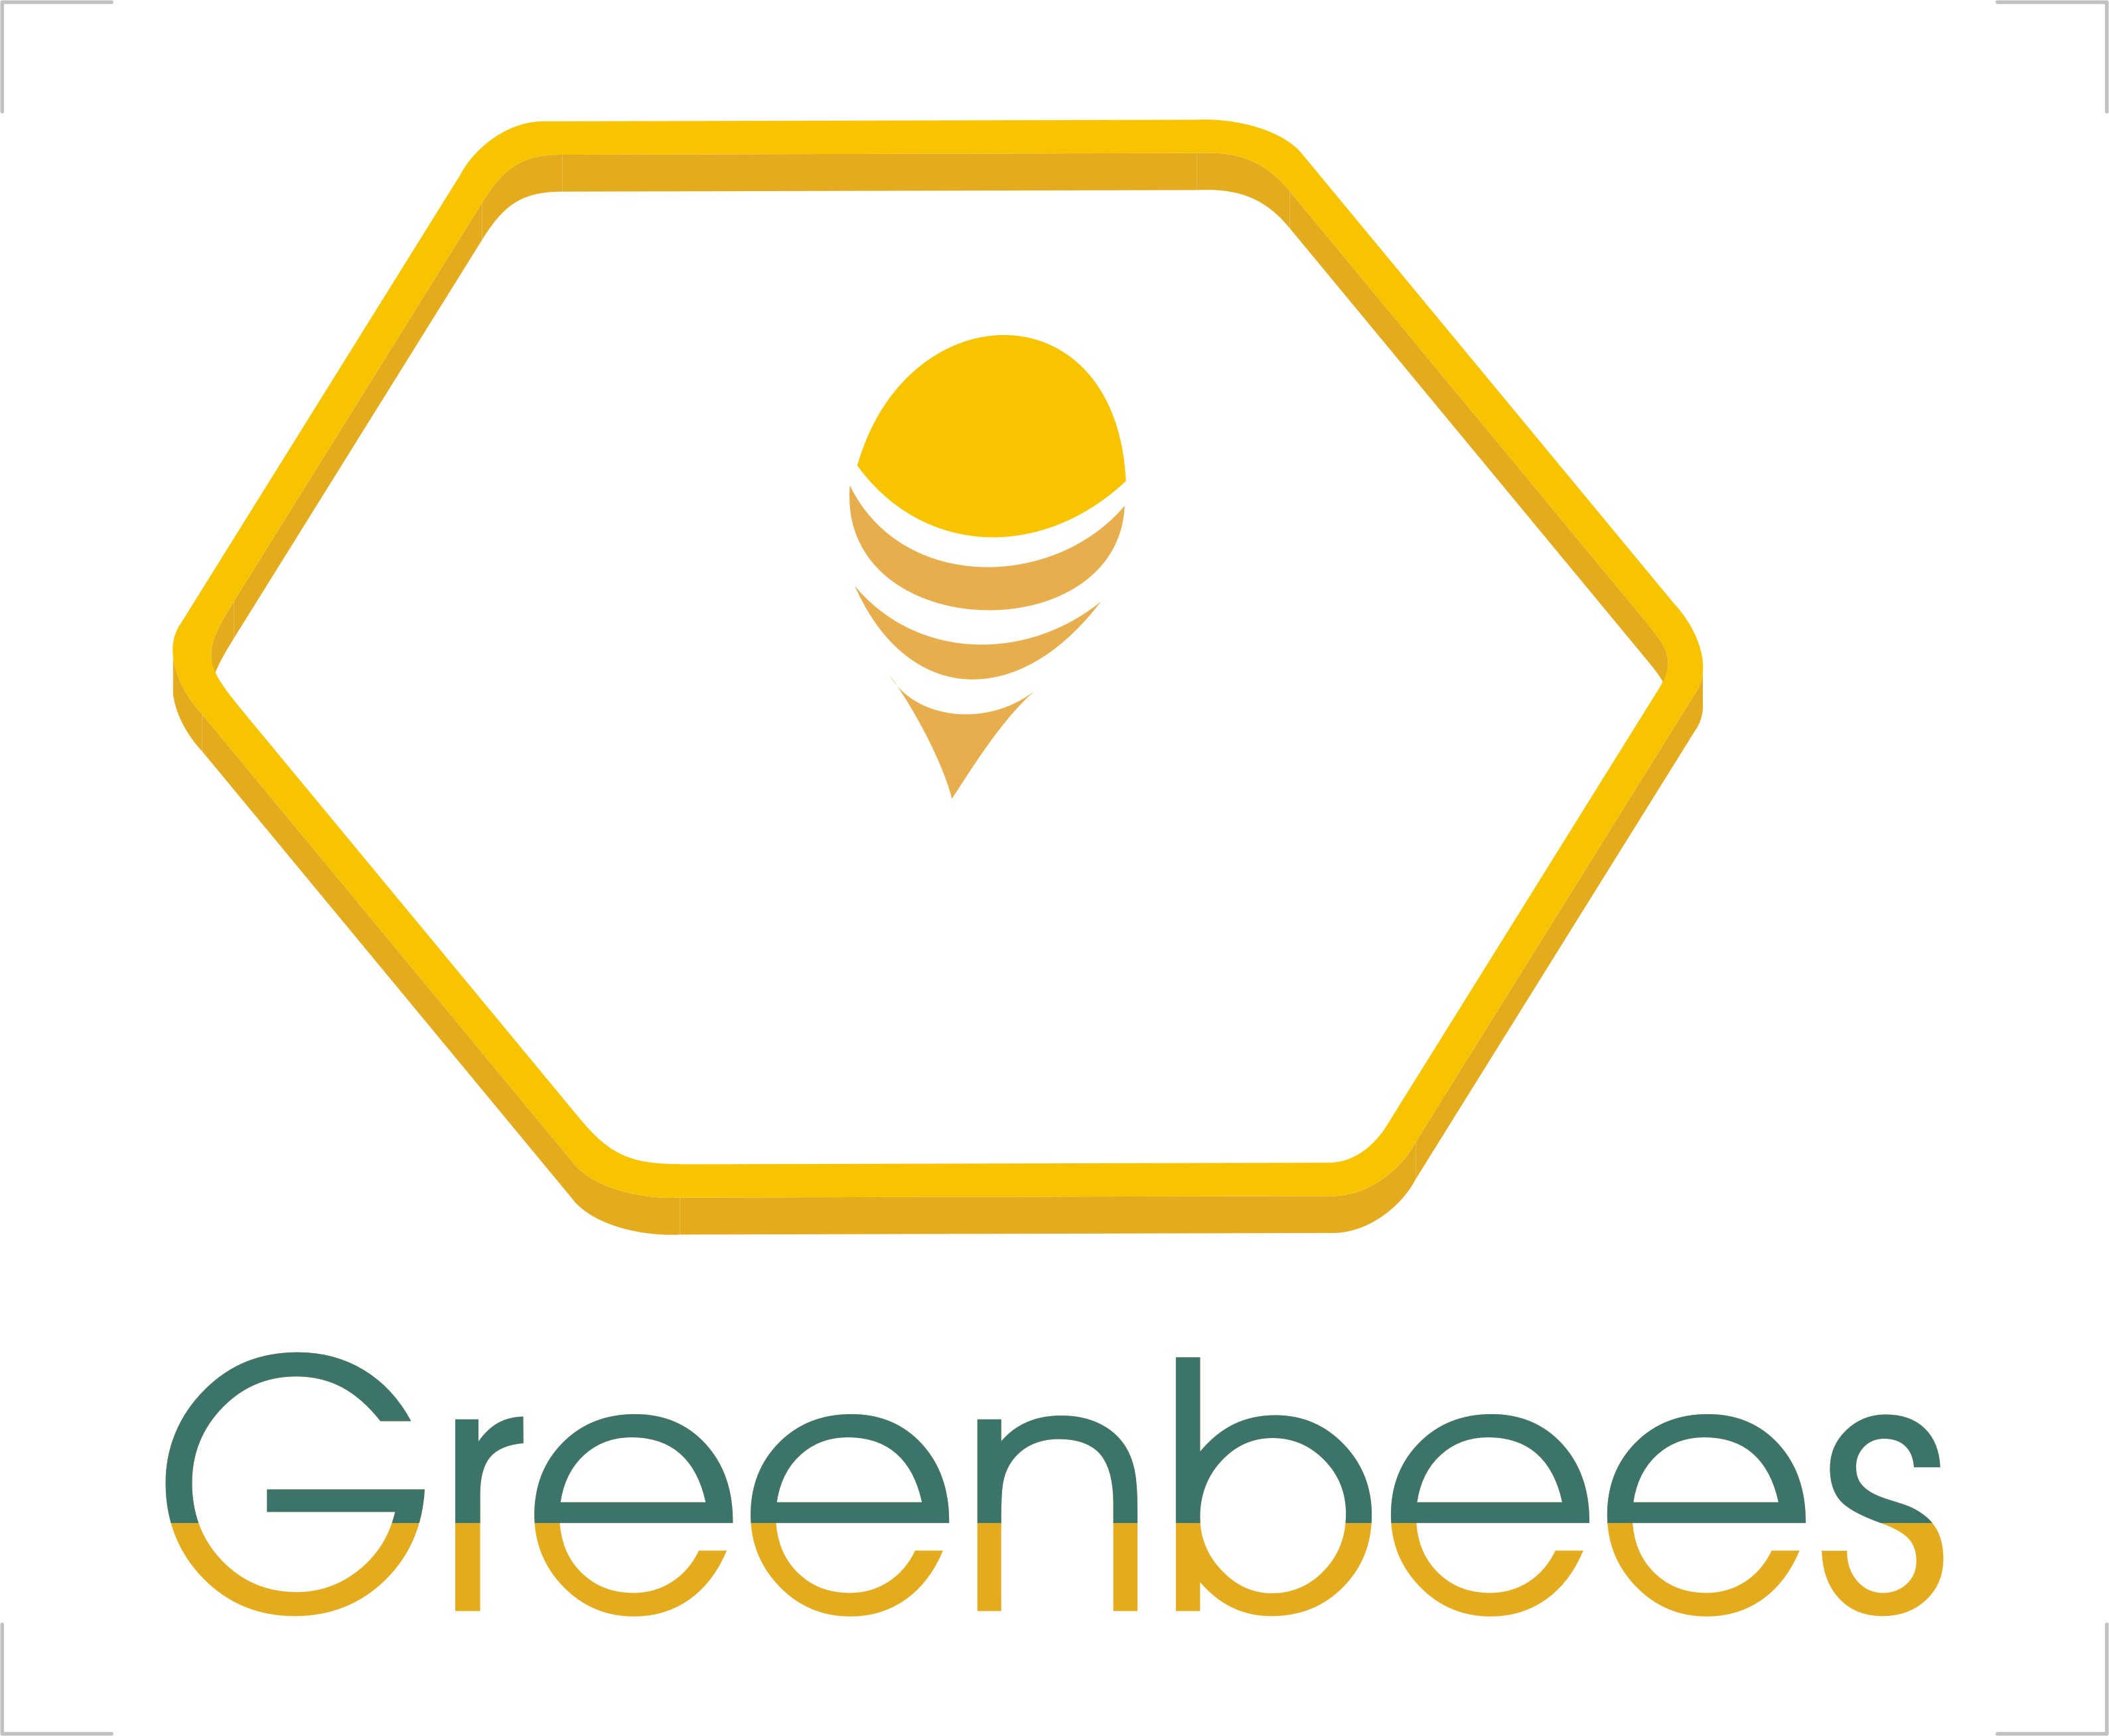 Logo Design by Crystal Desizns - Entry No. 145 in the Logo Design Contest Greenbees Logo Design.